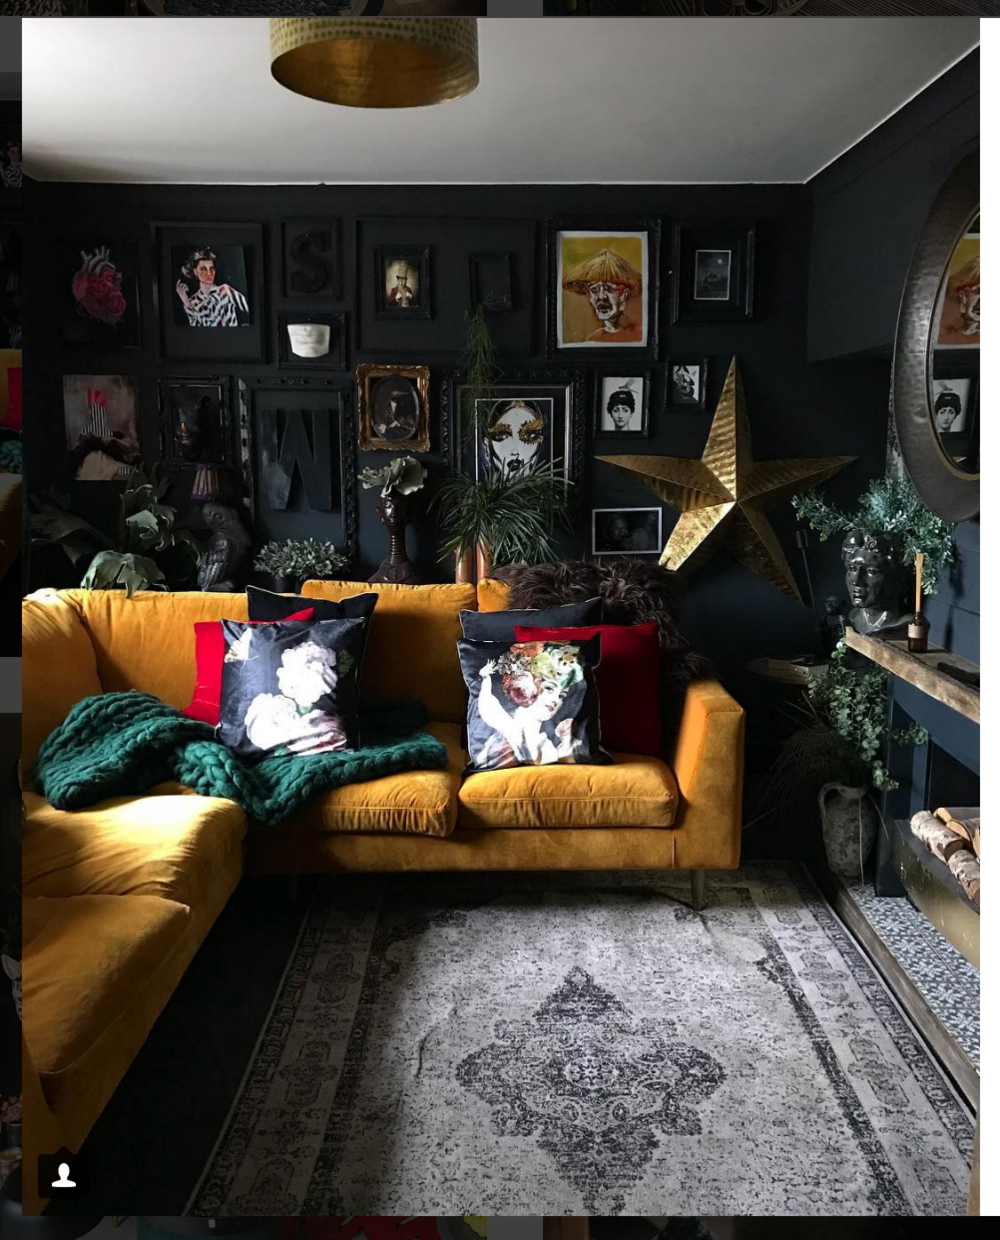 the velvet sofa of my dreams - Seen on the Hilary and Flow instagram account. Which is dark and dreamy and you feel like you might get lost wandering around in this forest of amazingness.